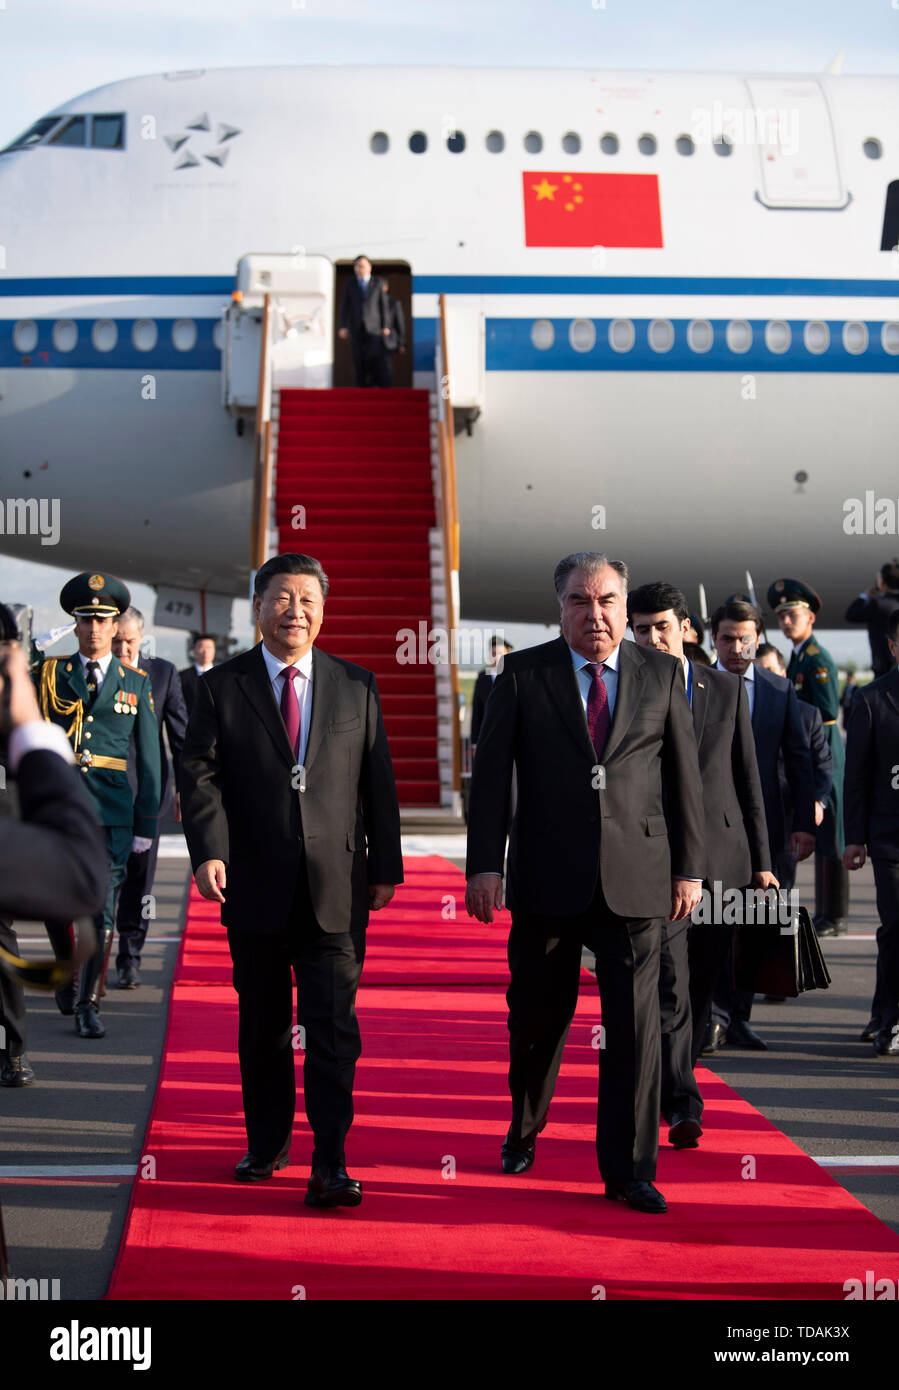 Dushanbe, Tajikistan. 14th June, 2019. Chinese President Xi Jinping (L) is warmly received by Tajik President Emomali Rahmon upon his arrival at the airport in Dushanbe, Tajikistan, June 14, 2019. Xi arrived here Friday for the fifth summit of the Conference on Interaction and Confidence Building Measures in Asia (CICA) and a state visit to Tajikistan. Credit: Sadat/Xinhua/Alamy Live News - Stock Image